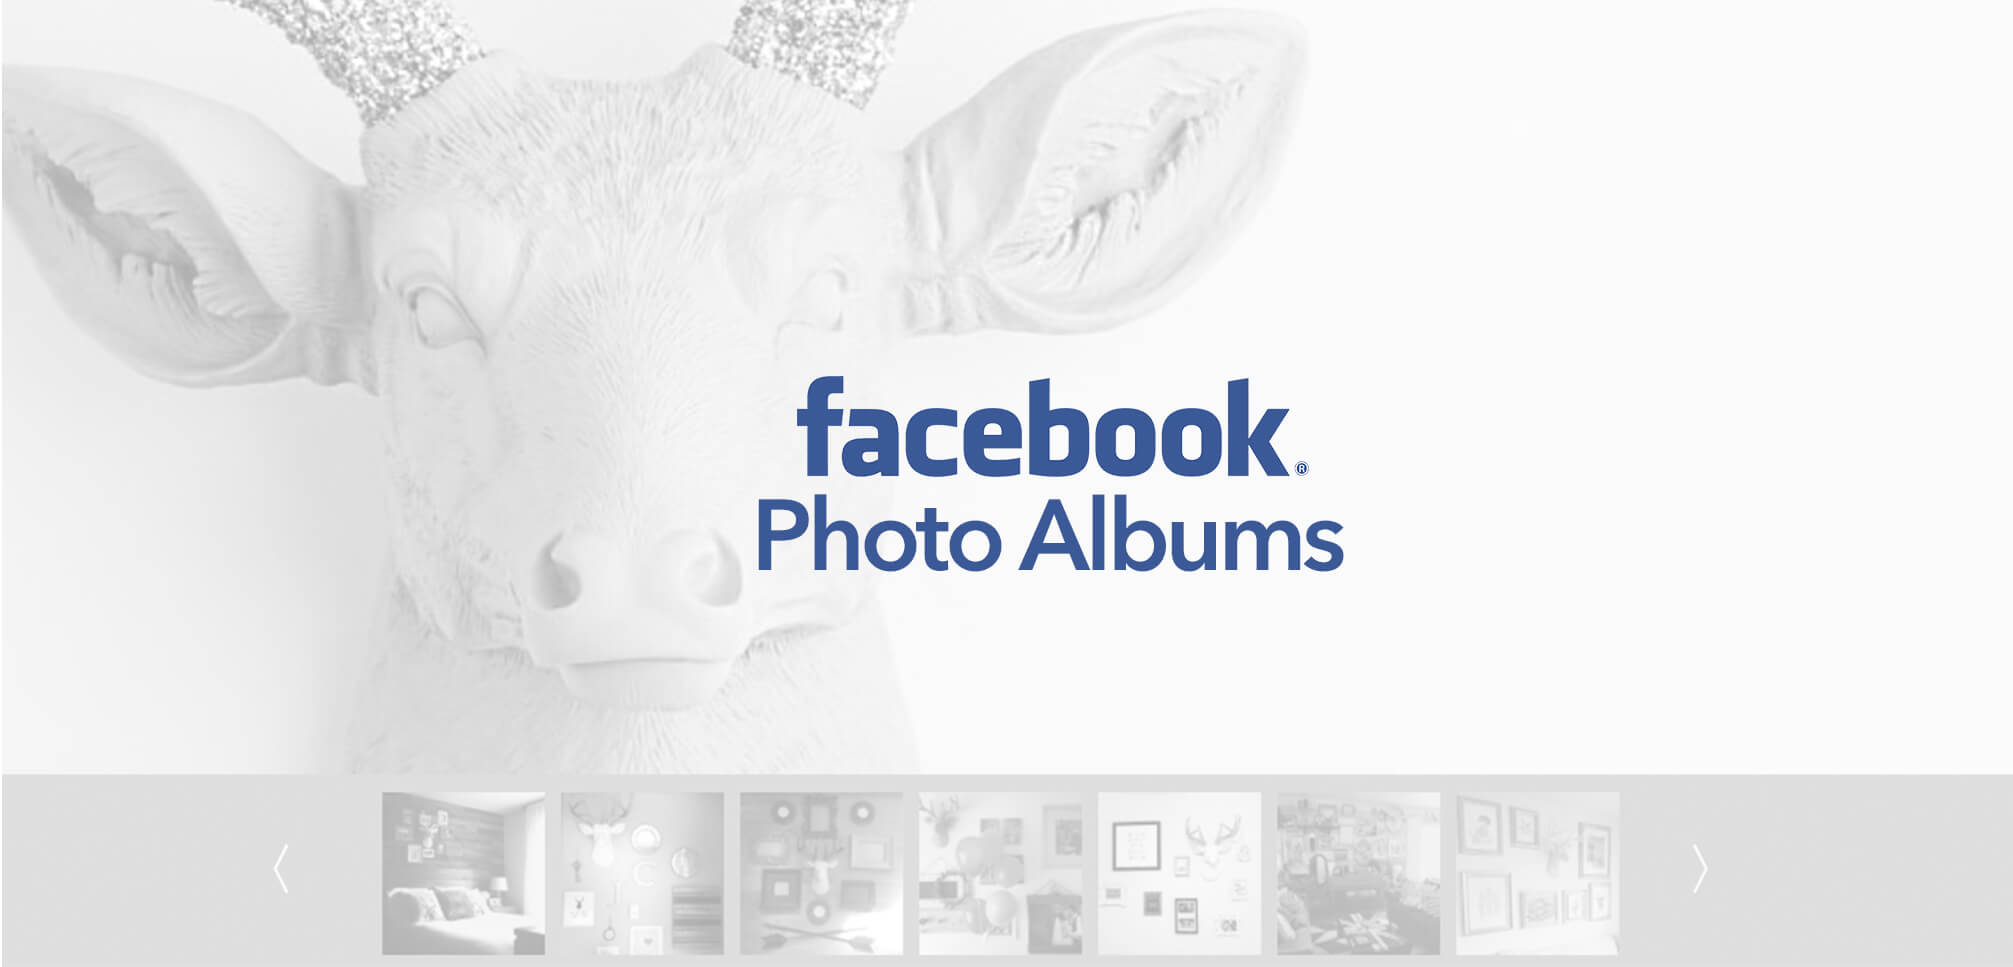 Facebook Photo Albums widget update